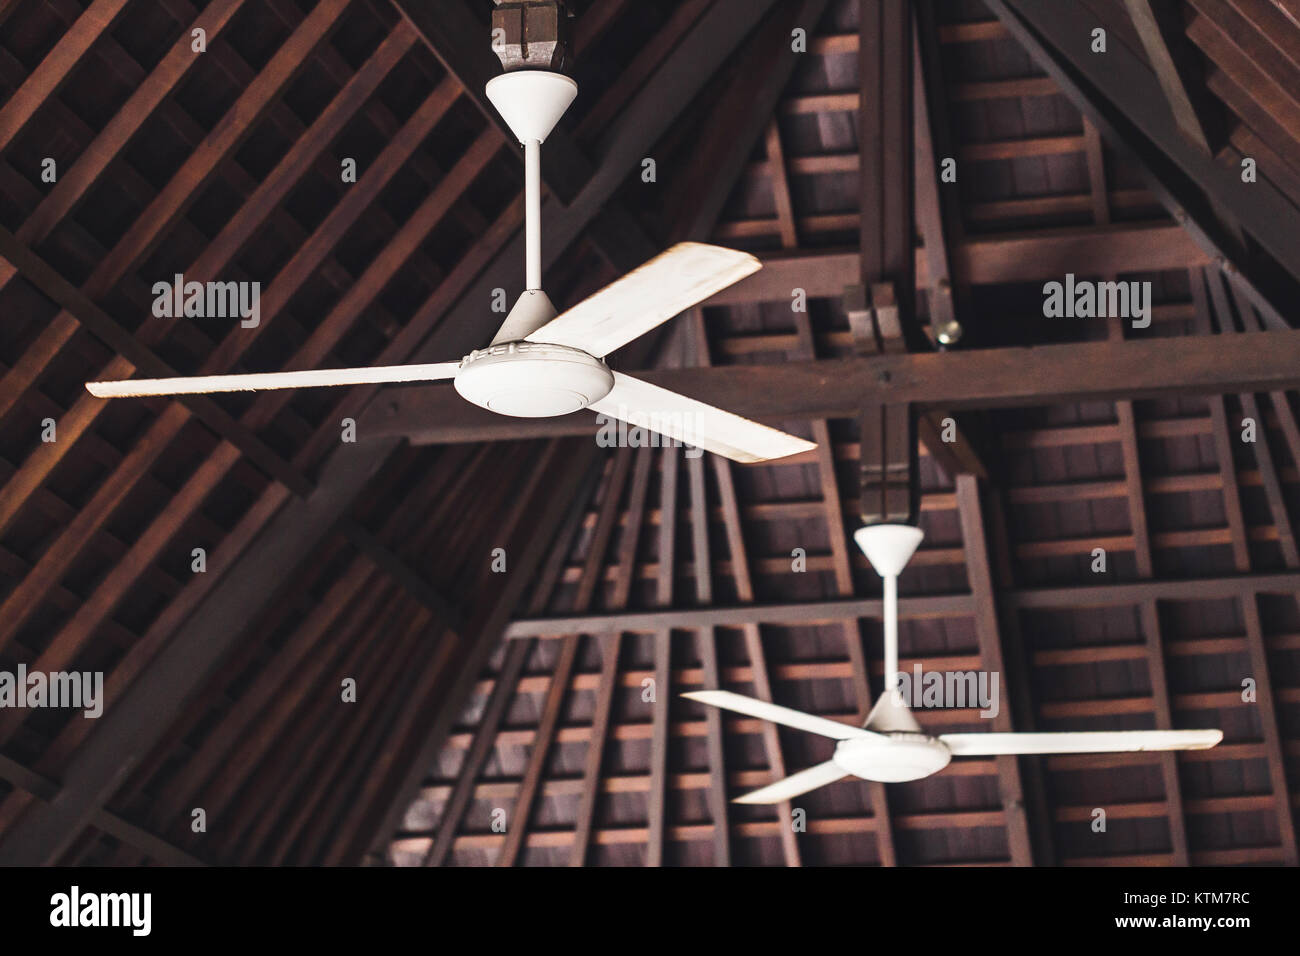 Old Ceiling Fan Hanging Under Wooden Roof Asian Style